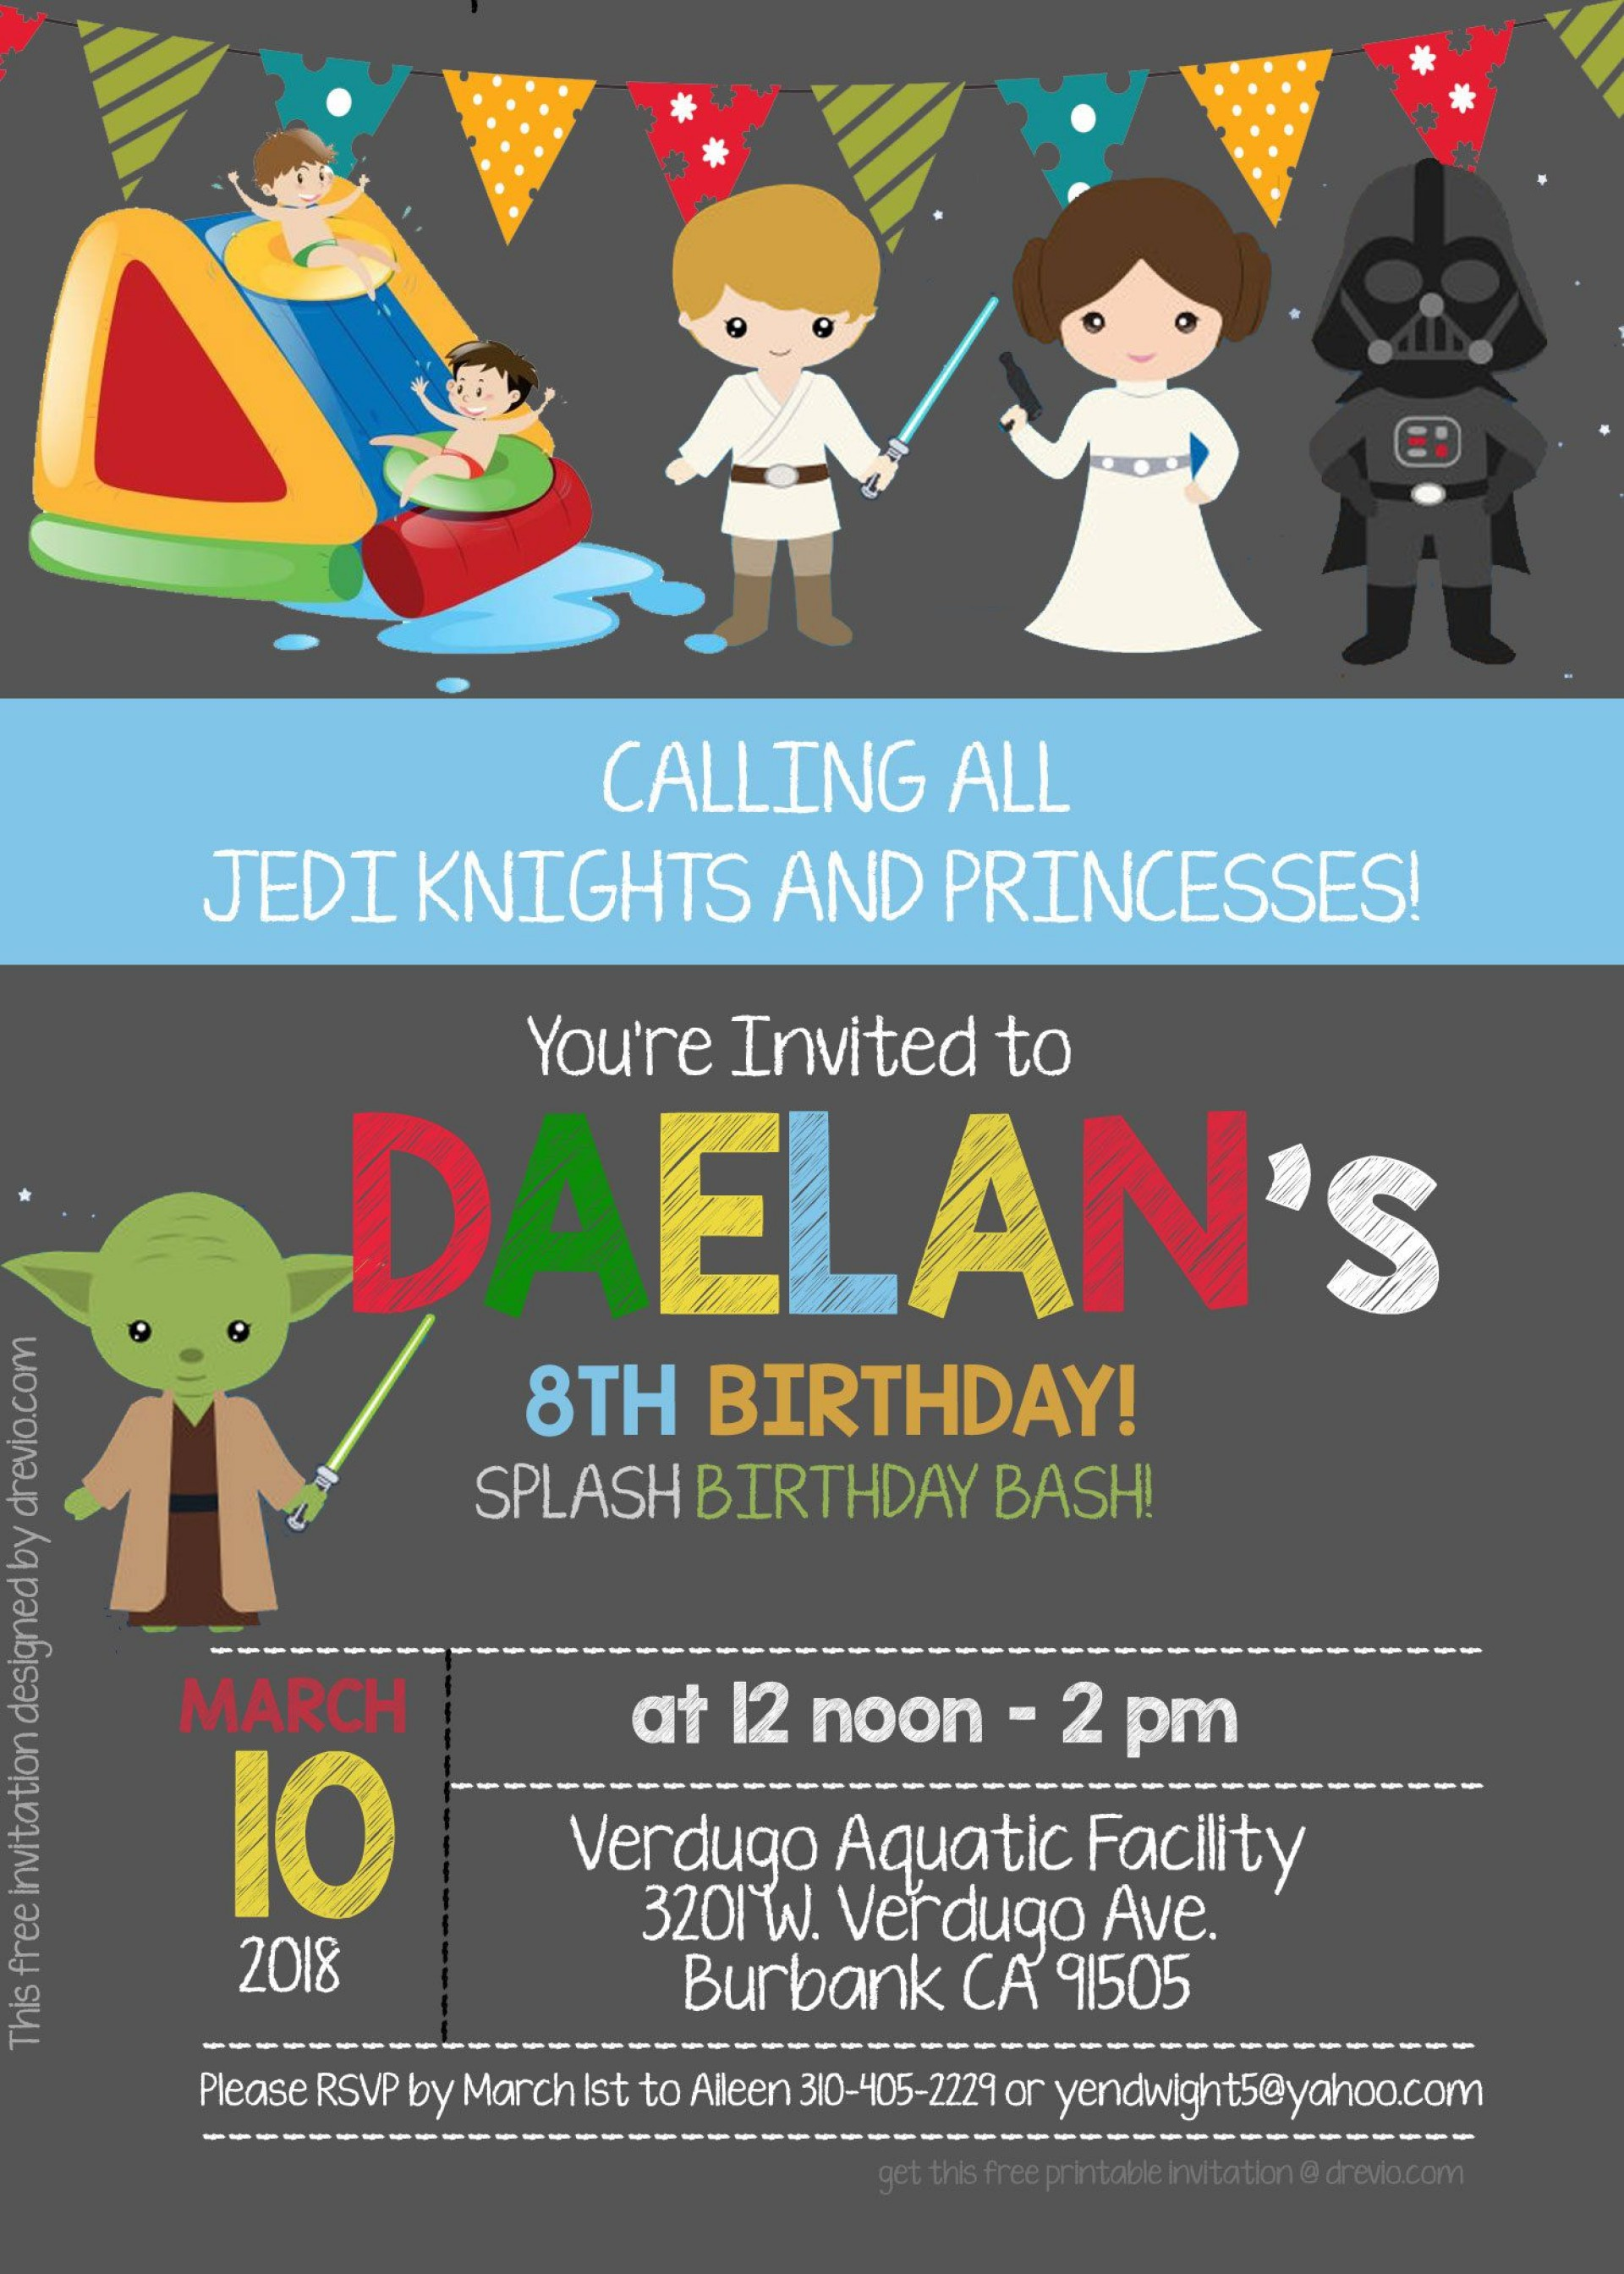 008 Awesome Star War Birthday Invitation Template Picture  Free Party Printable1920